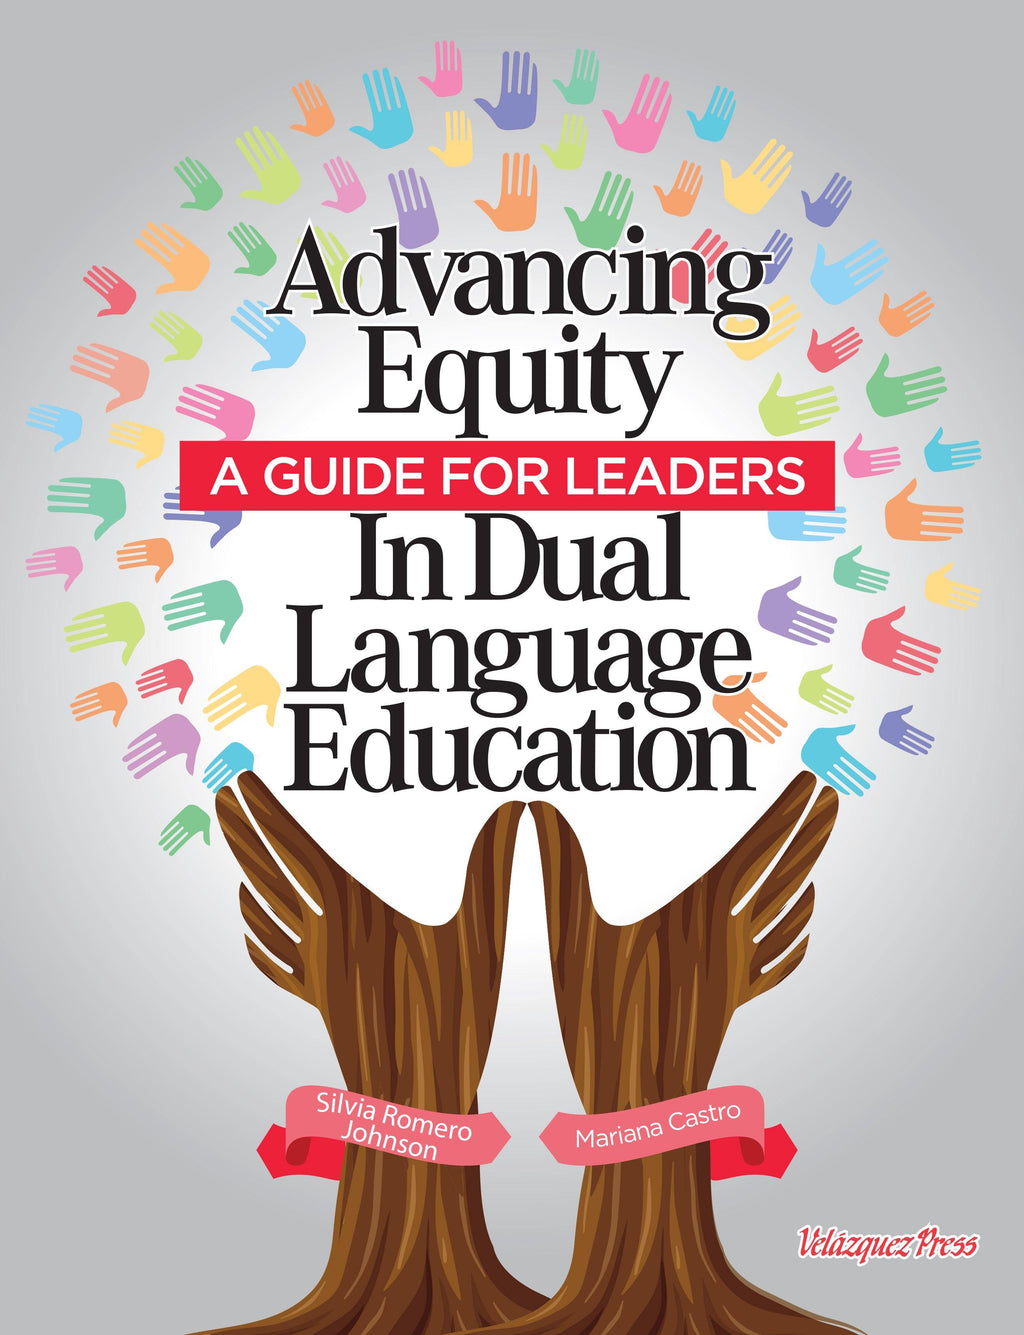 Advancing Equity in Dual Language Education: A Guide for Leaders - PREORDER - Velàzquez Press | Biliteracy